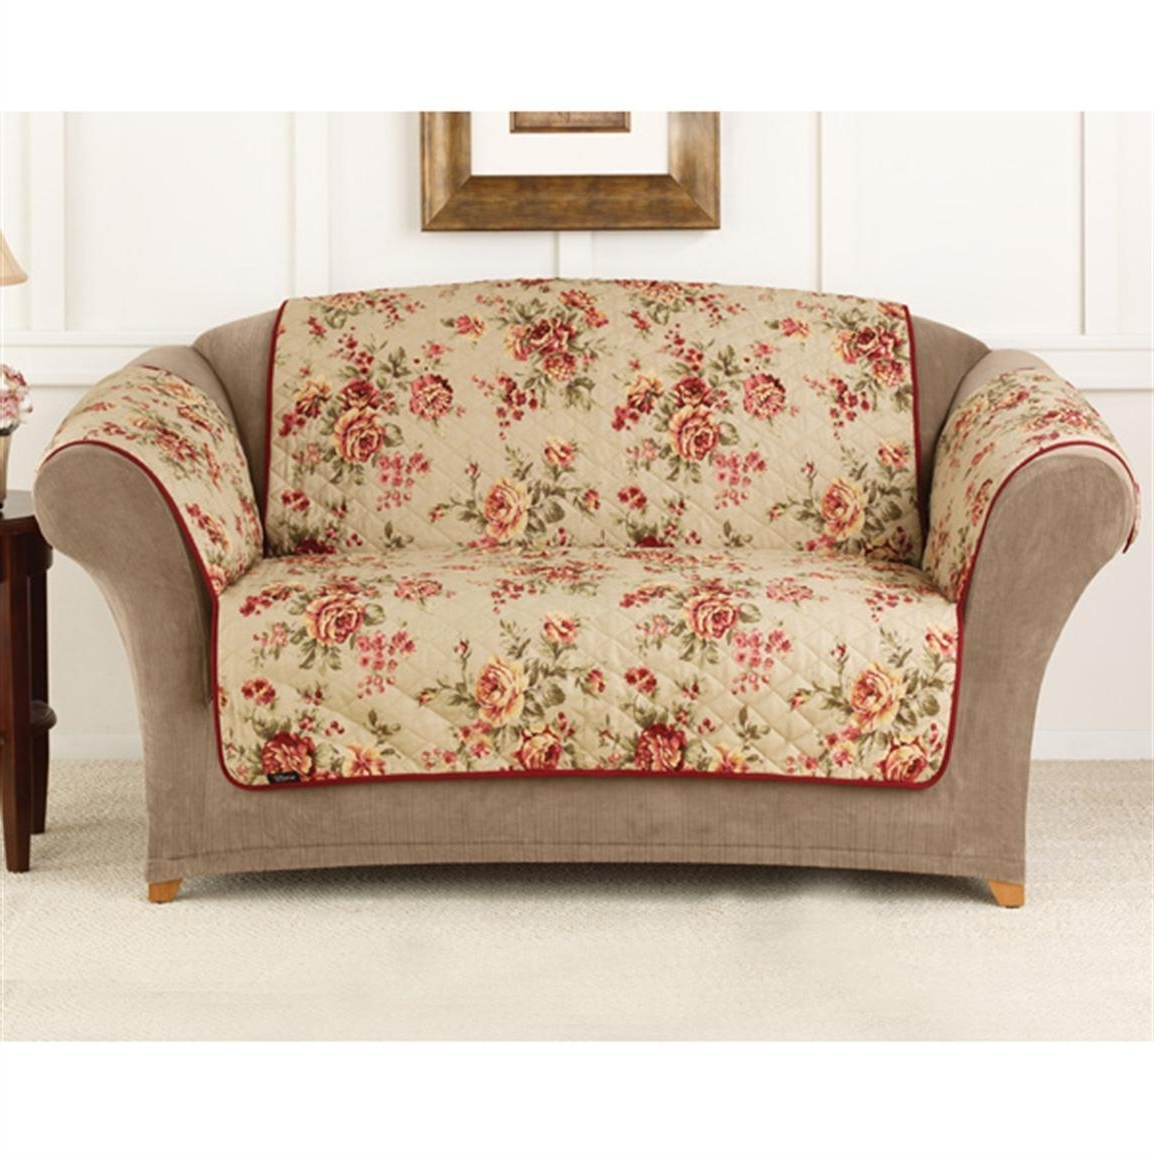 Furniture : Covers For Sofas And Couch Sure Fit Lexington Floral For 2018 Chintz Floral Sofas (View 5 of 15)